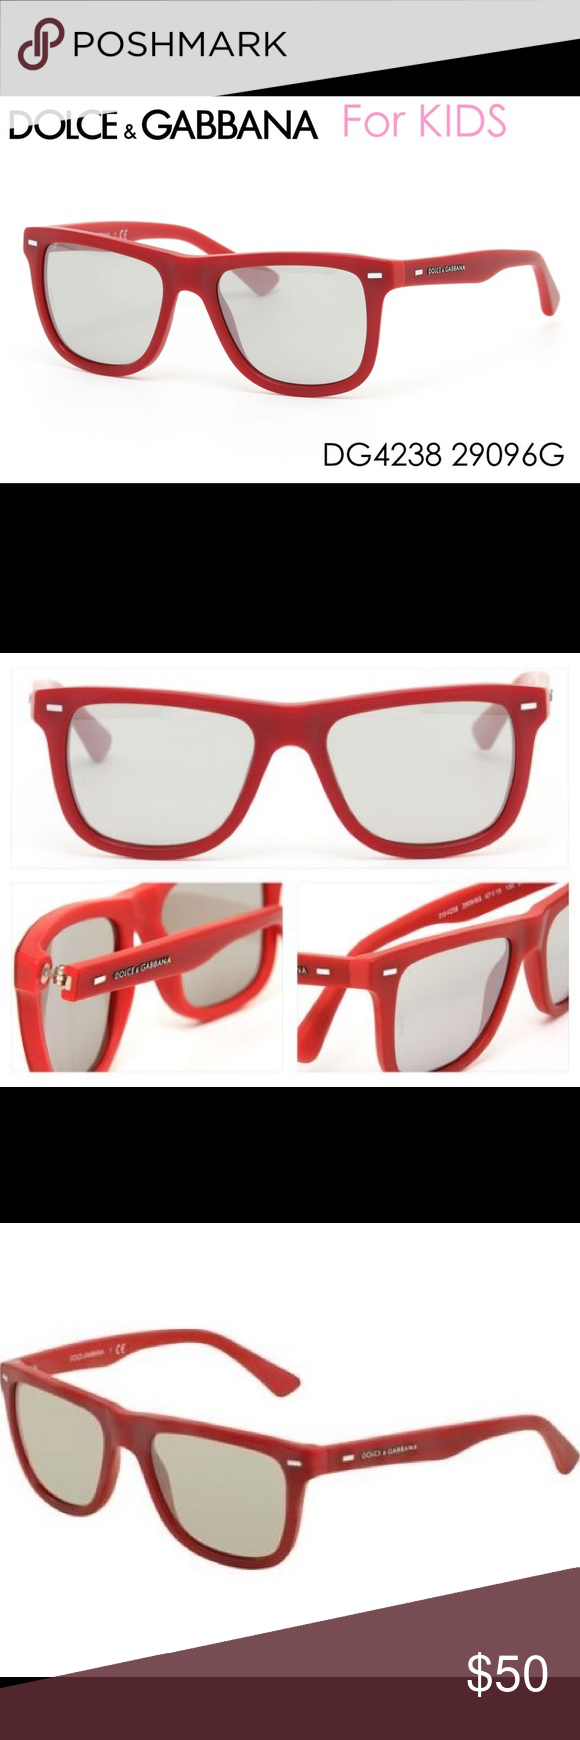 9700376d7d2 Dolce and Gabbana Kids Sunglasses Dolce and Gabbana Kids Sunglasses Opticals✨  Matte Red Frame